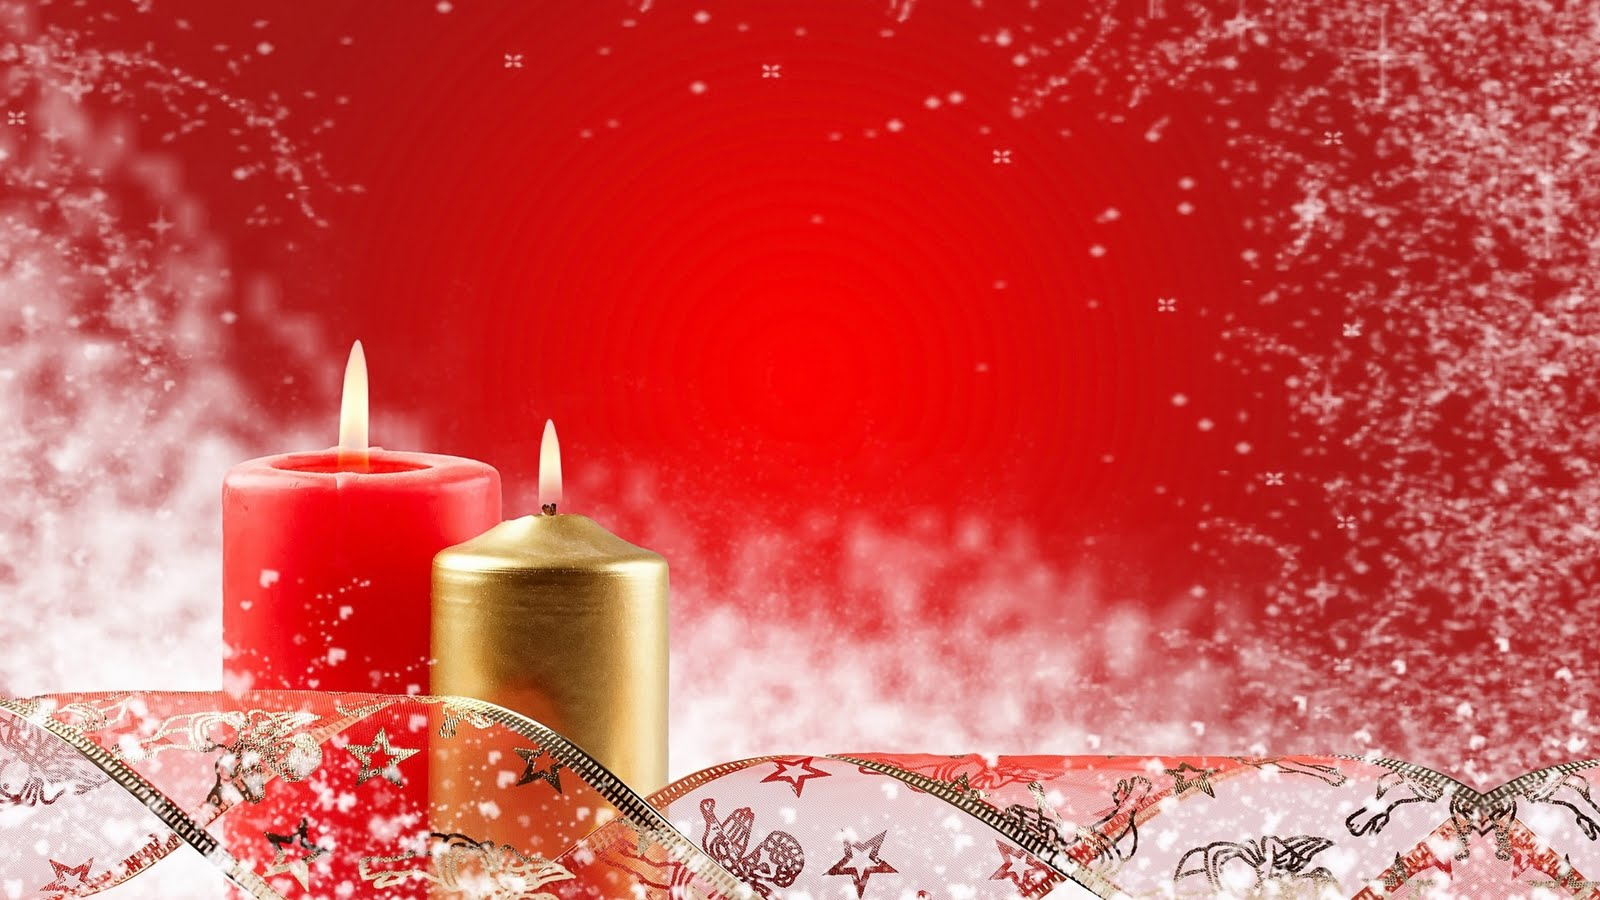 2011 Christmas Greeting Cards Christmas Wallpapers E Cards Online 1600x900